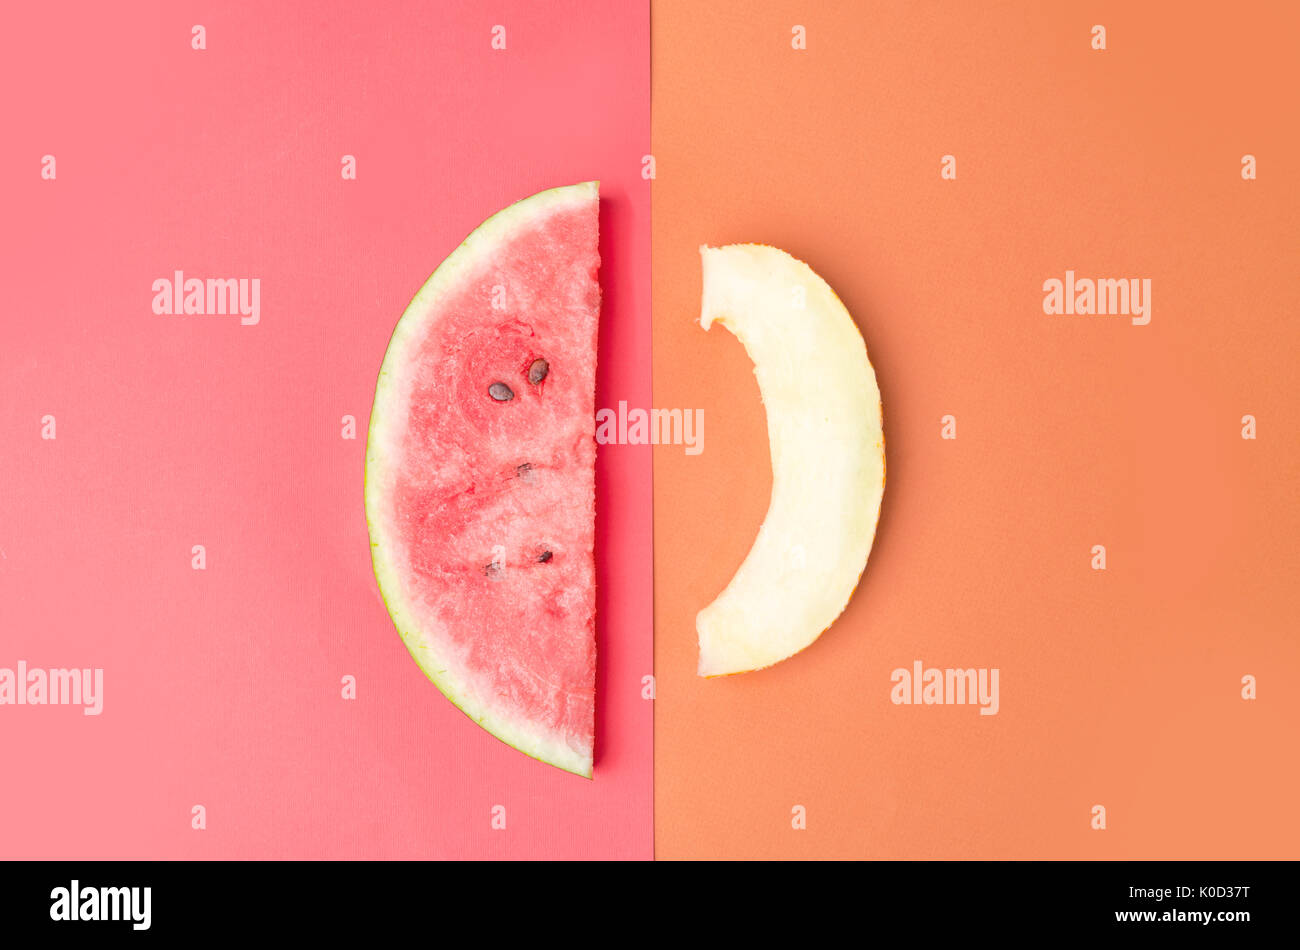 Slice of watermelon with stones on red background and melon isolated over orange background - Stock Image